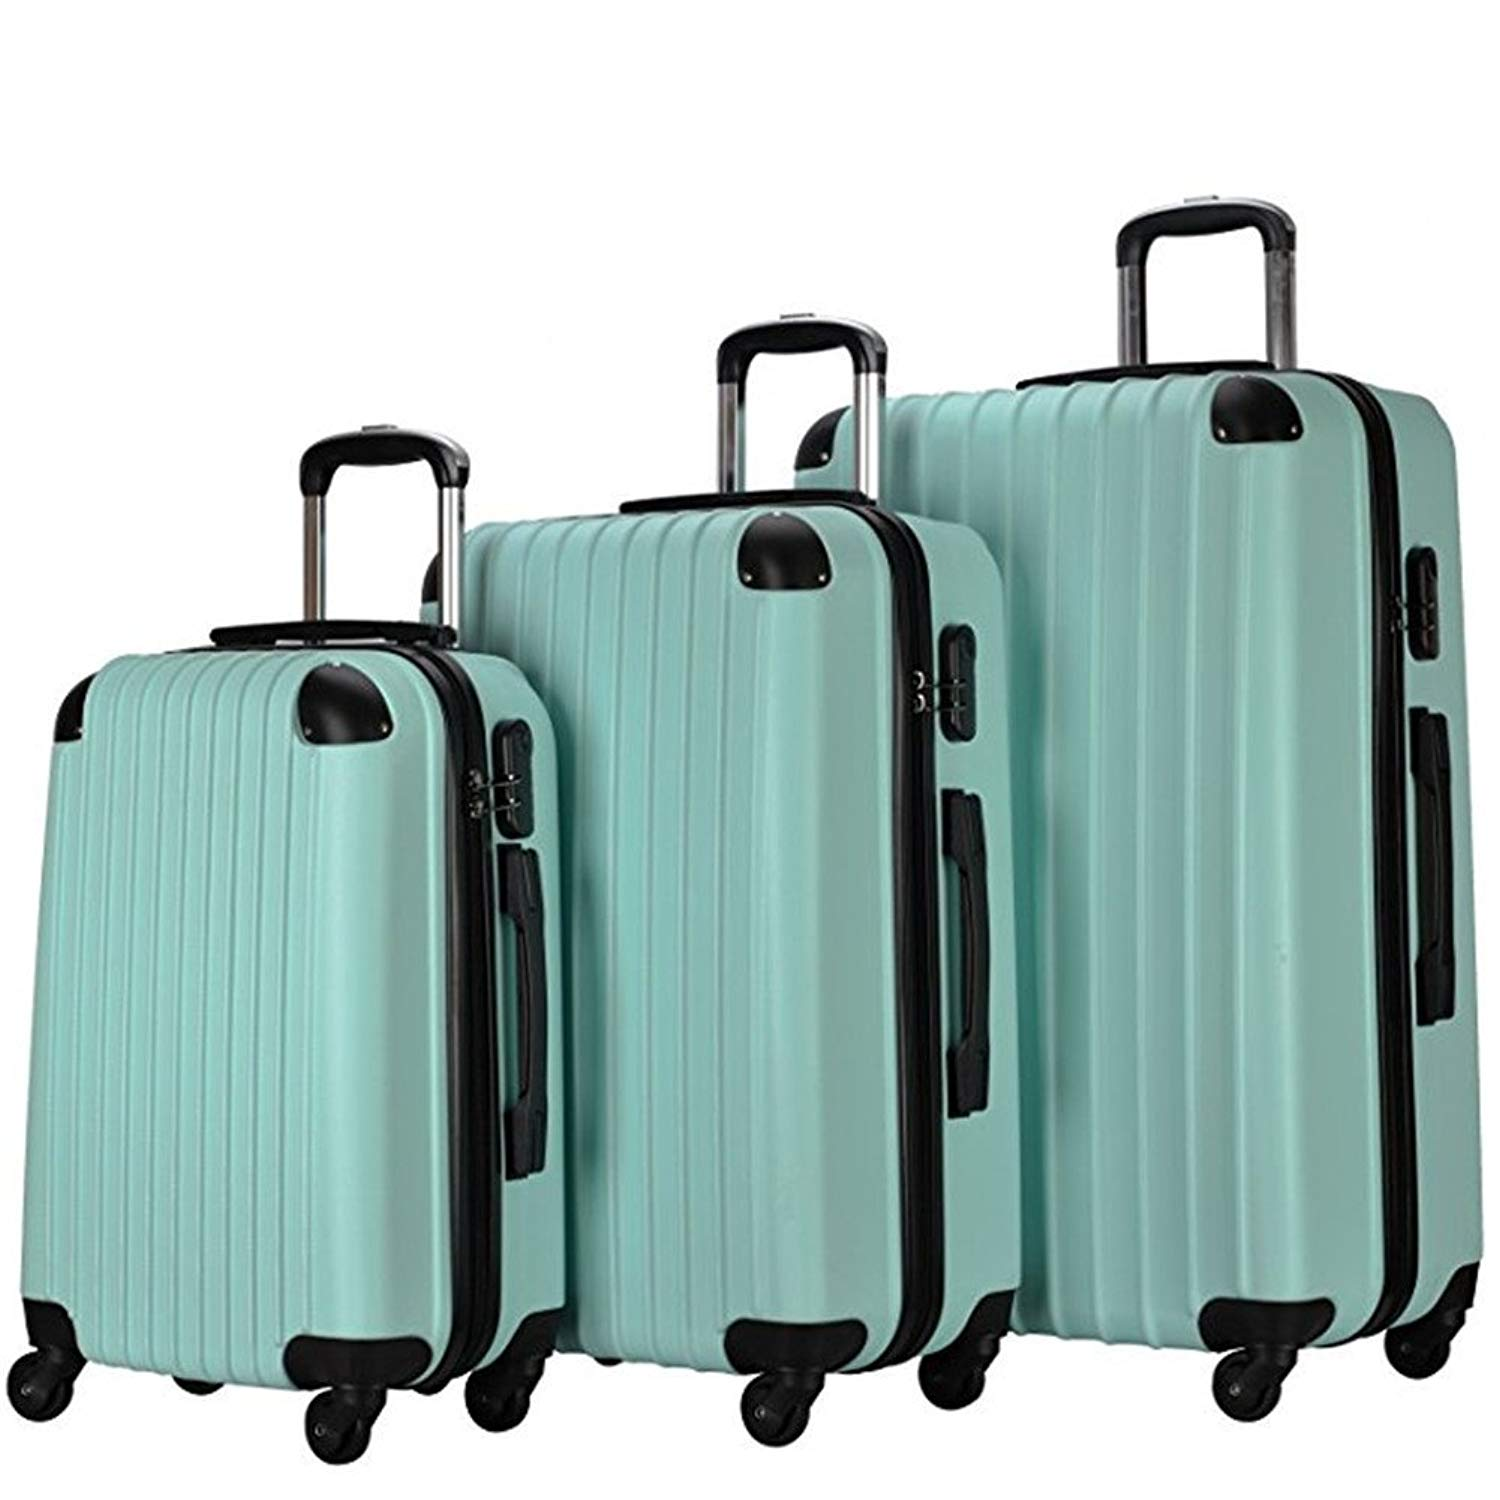 3 Piece Carry On Spinner Wheels Luggage Sets Travel Suitcases